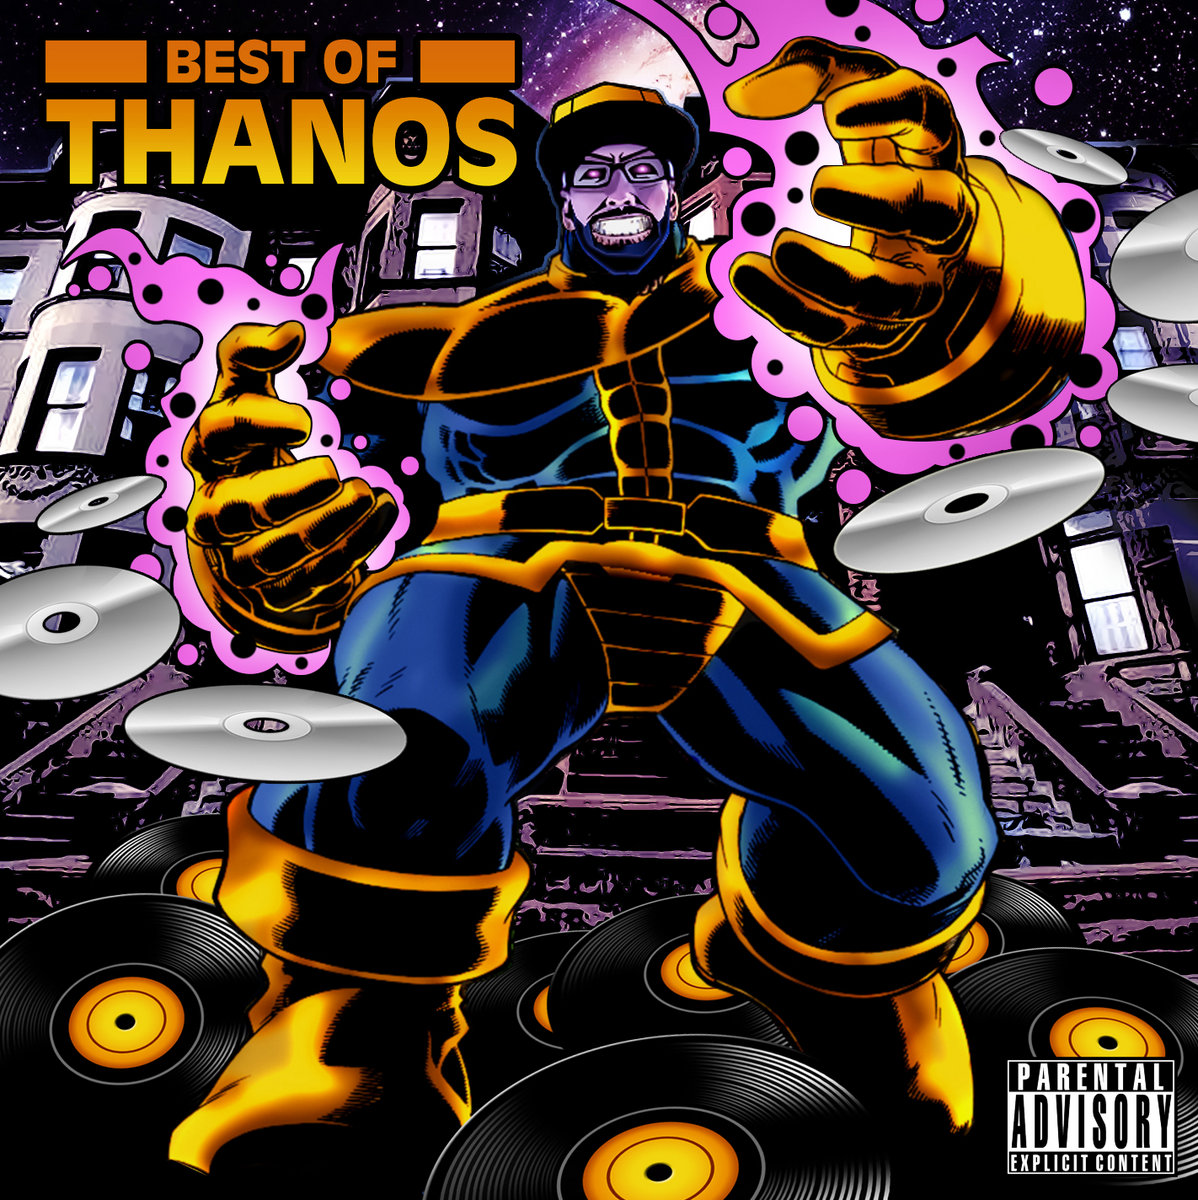 10  Vast Aire - Gunset Freestyle - Prod  by Thanos Beats